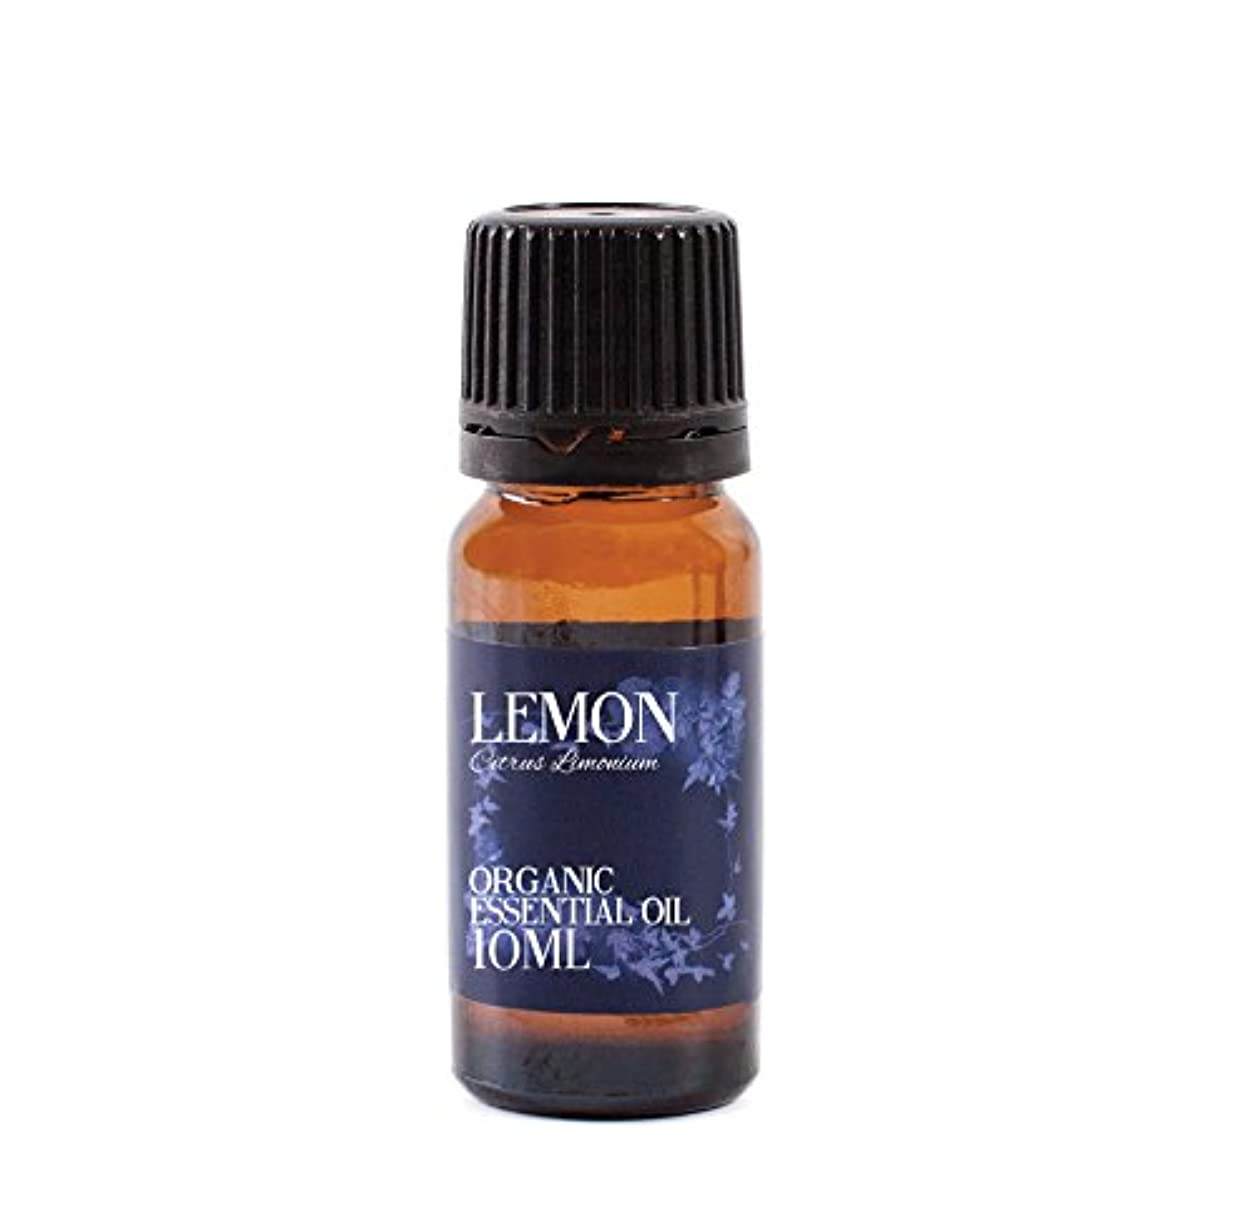 ロマンス浸漬超越するMystic Moments | Lemon Organic Essential Oil - 10ml - 100% Pure